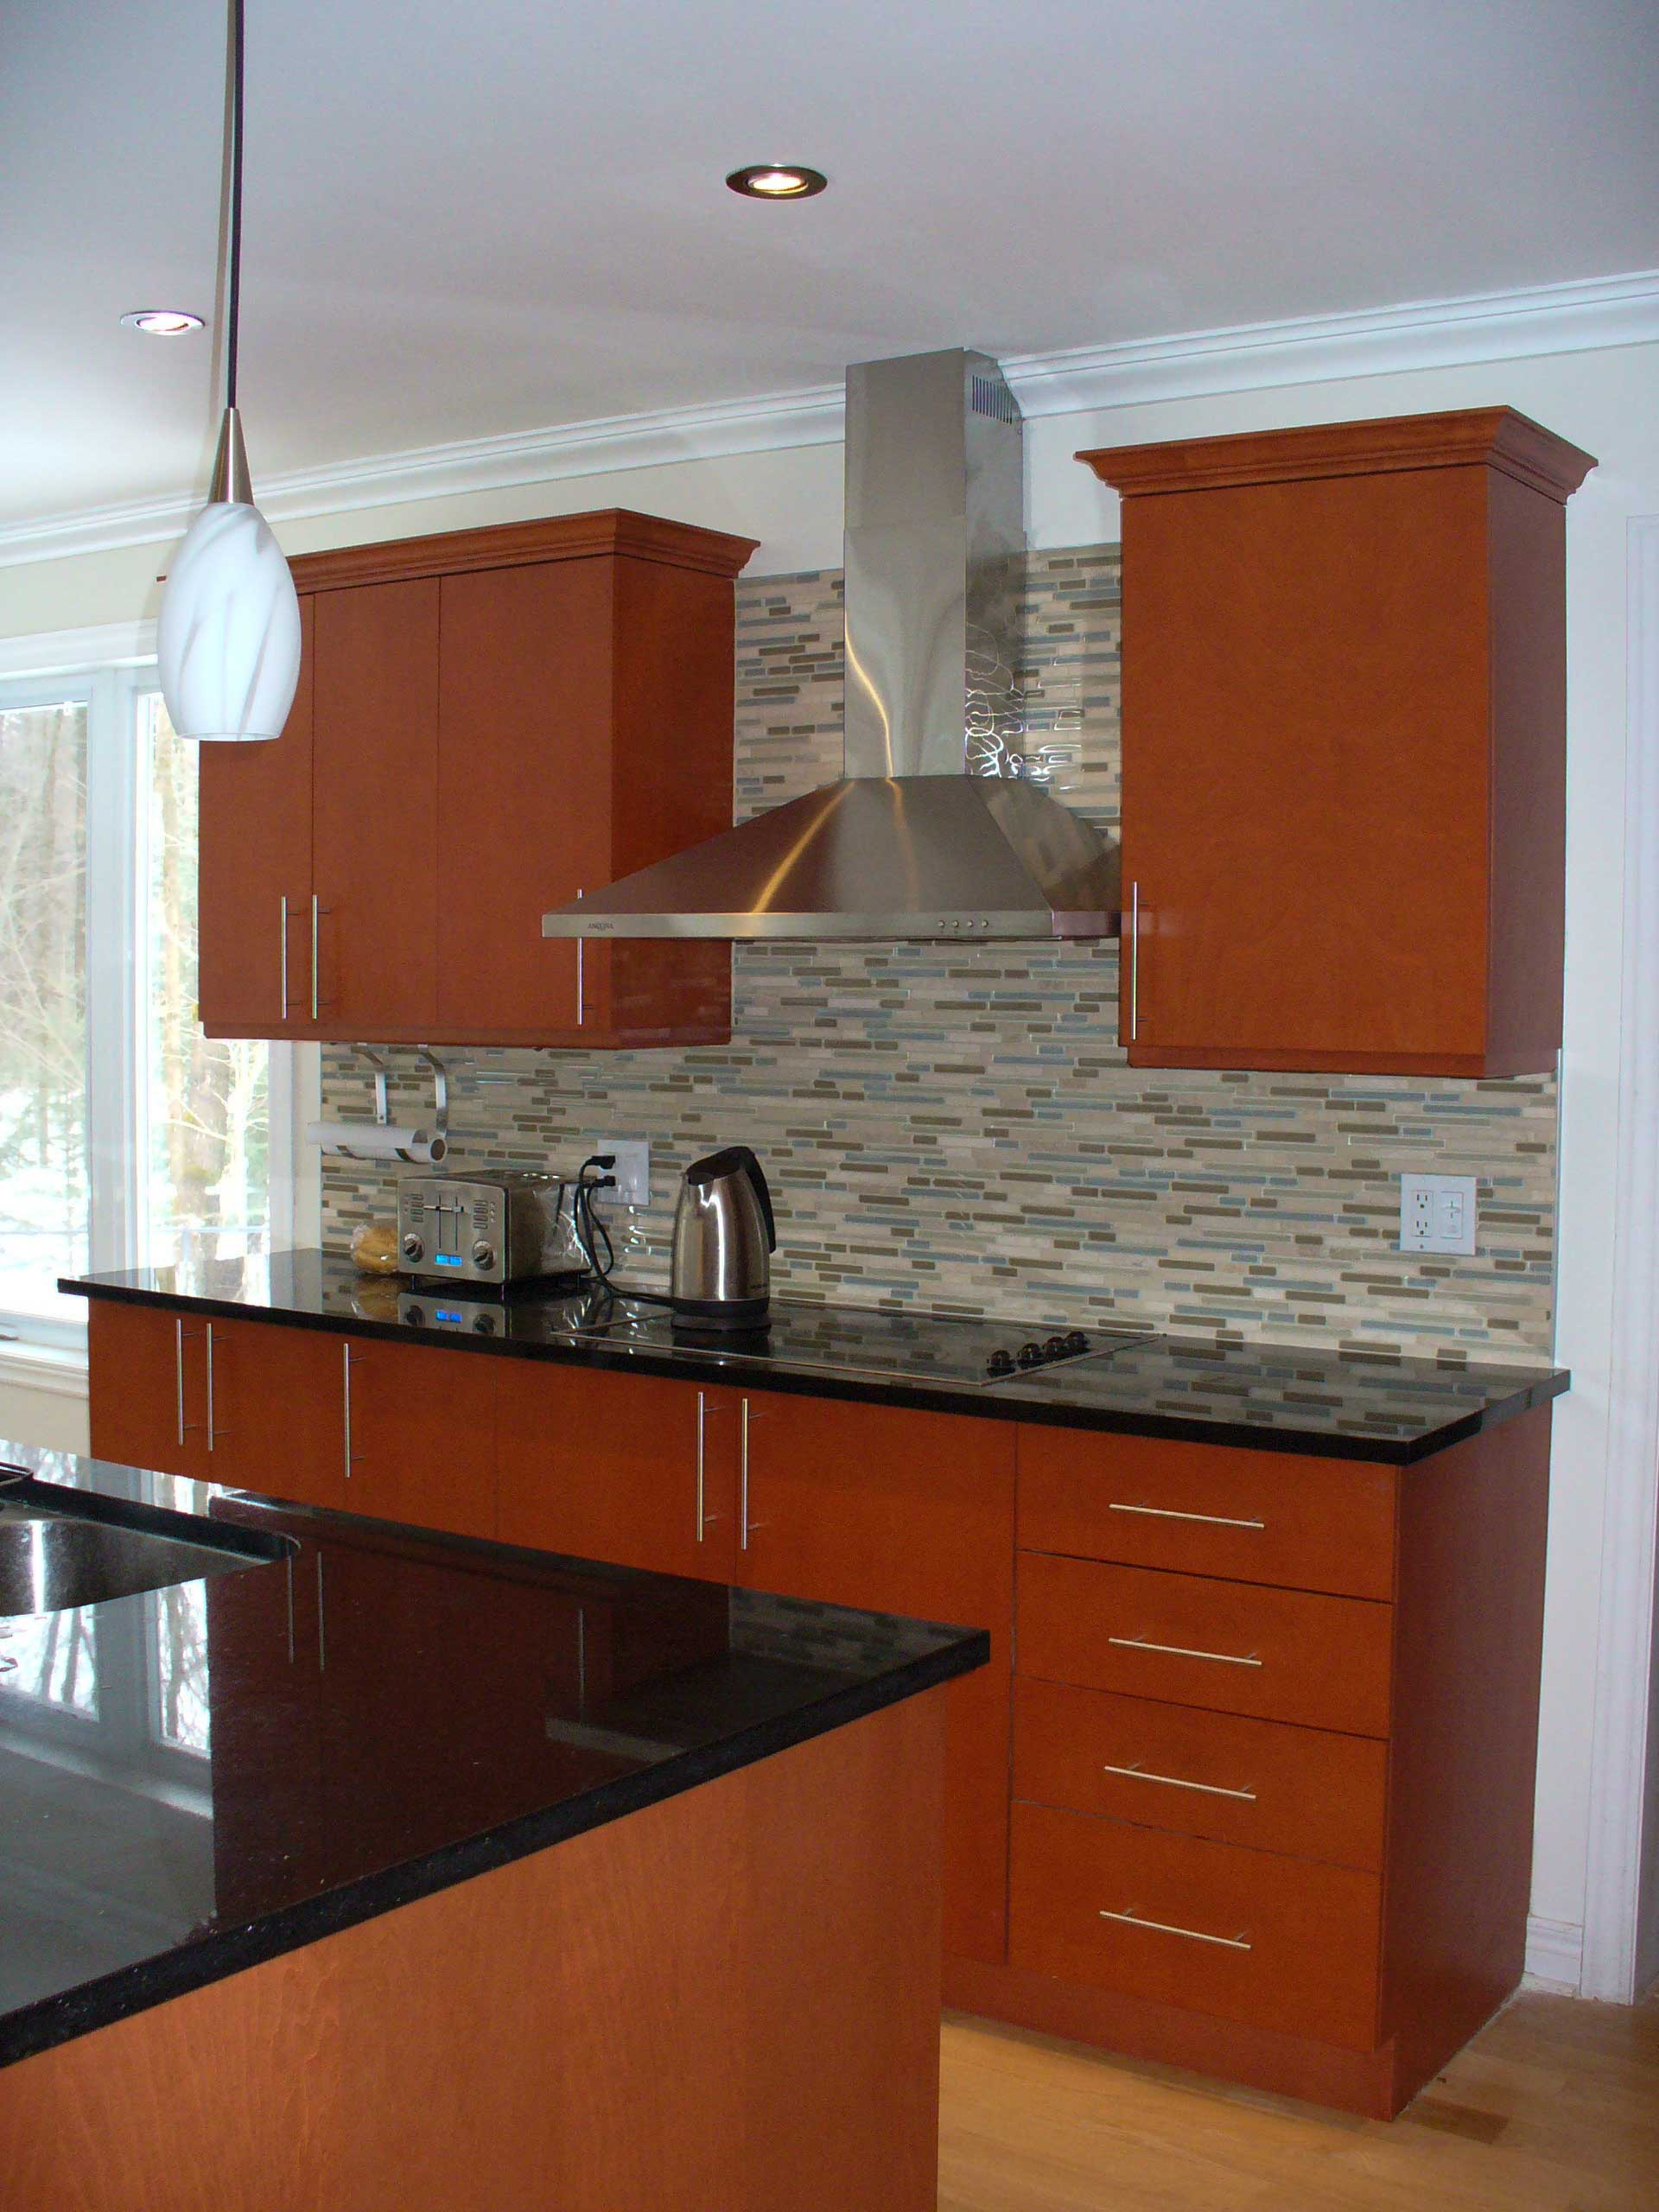 Custom made unique and stylish looking kitchen cupboards in - West Island Cabinetmaking